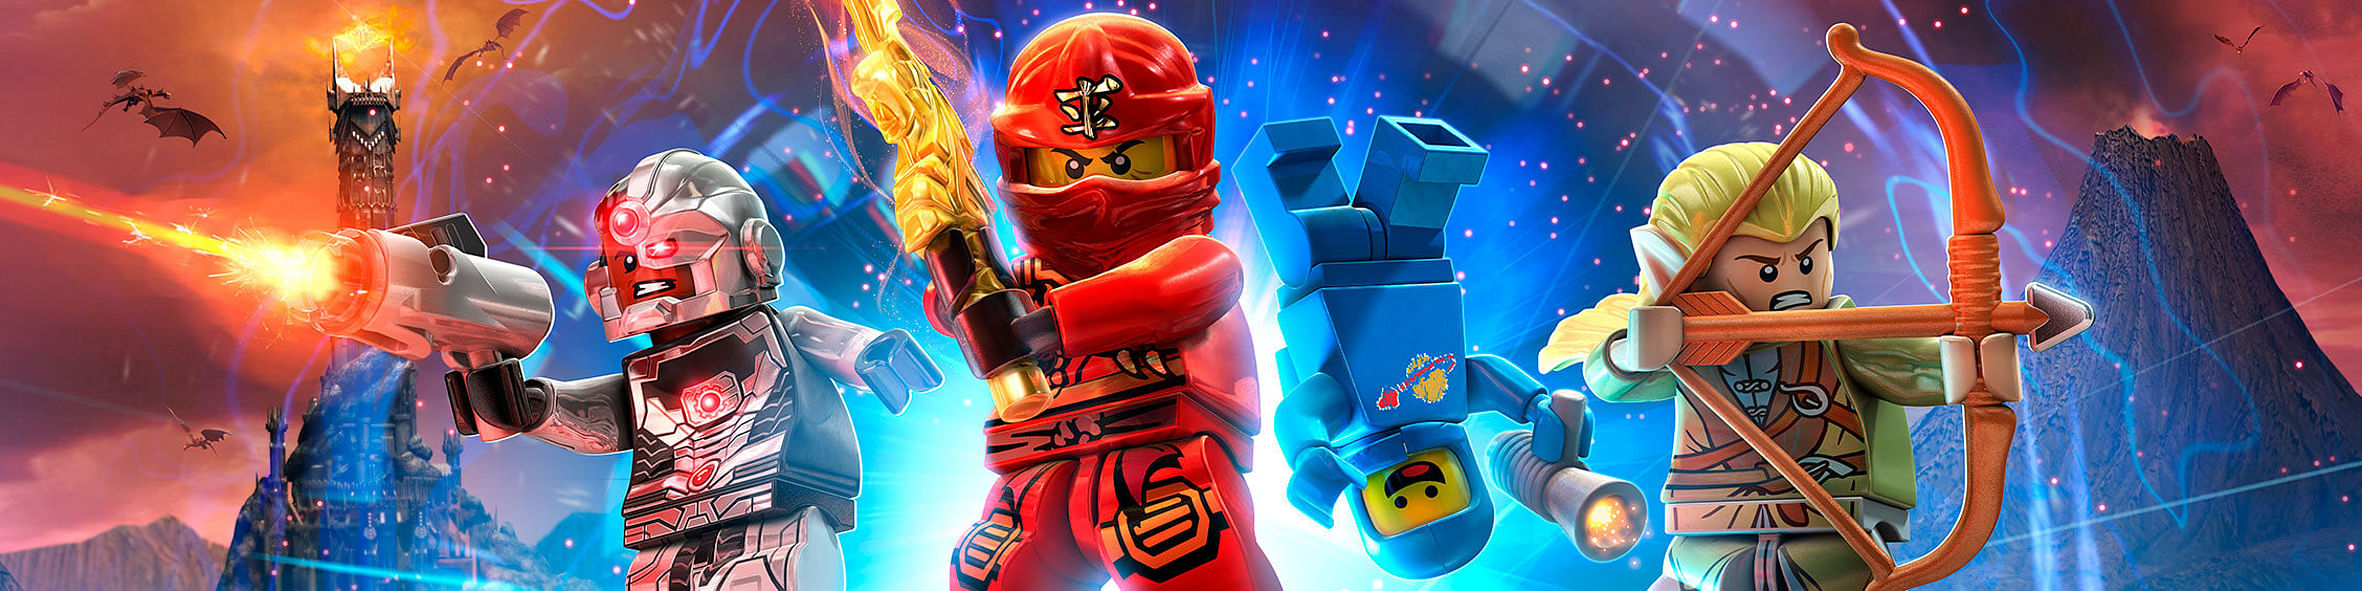 The toys used for Lego Dimensions are actual Lego pieces. Figures can be removed completely from their base plates - the components that contain all the digital information about the toys for the game.